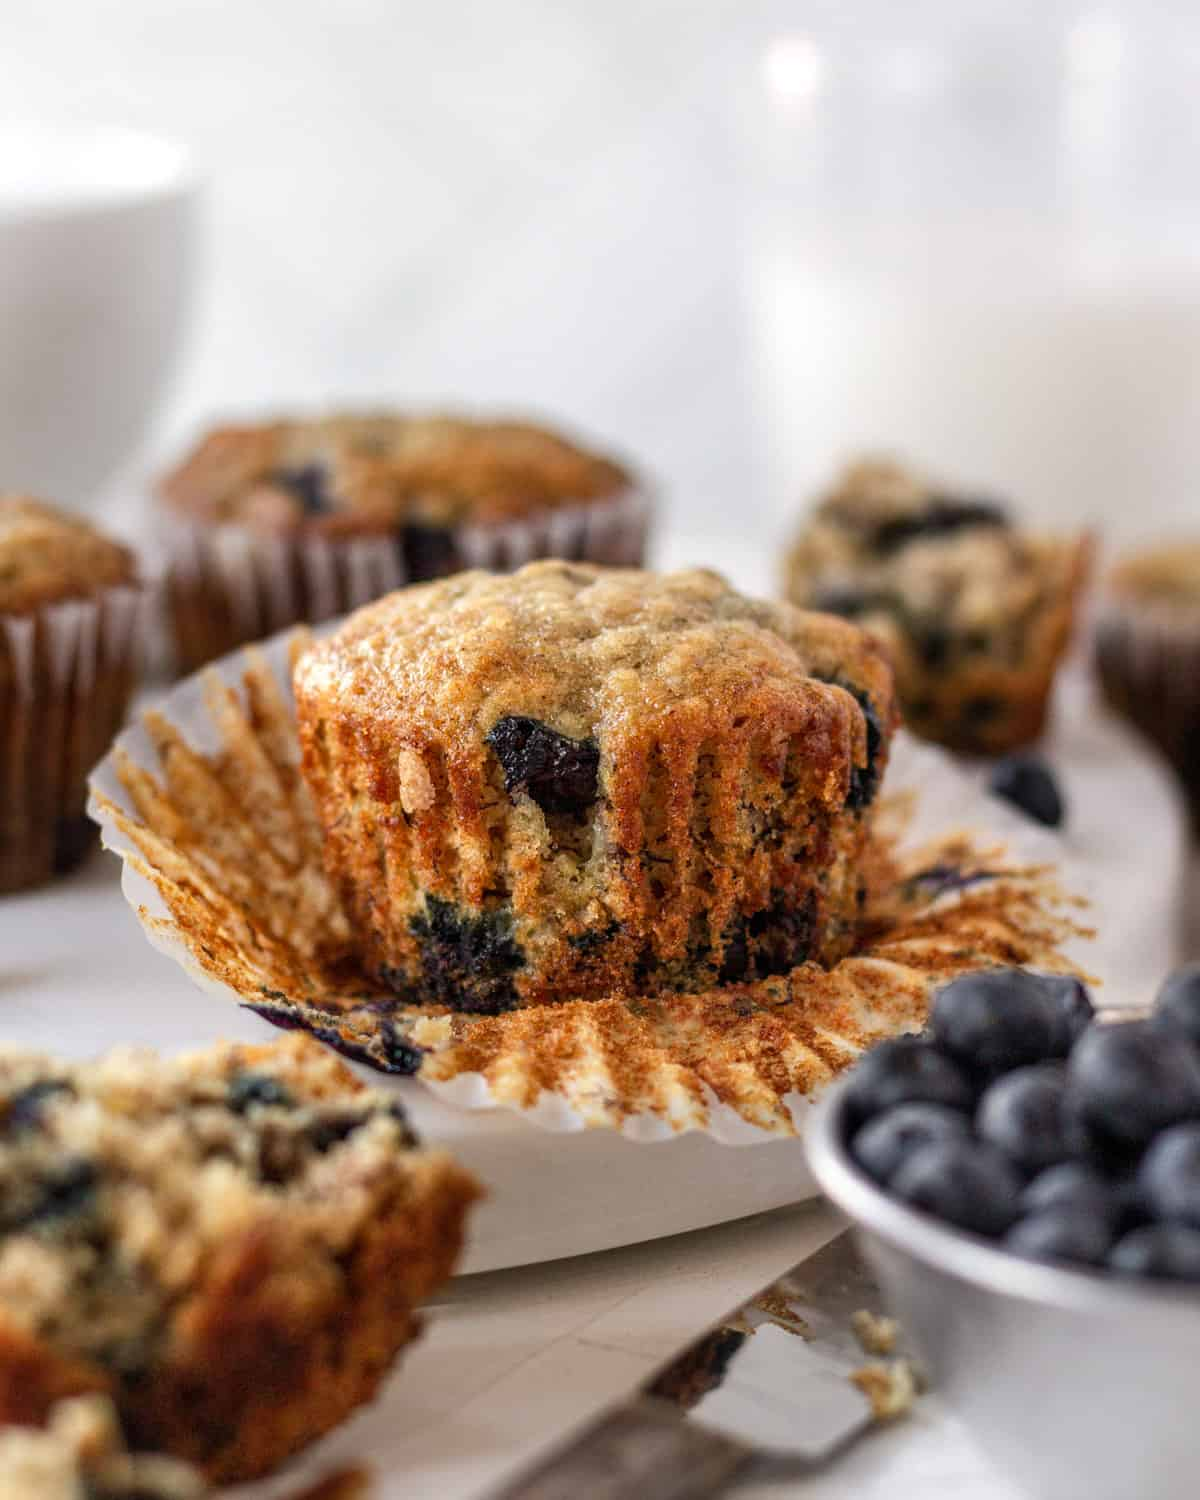 a banana blueberry muffin with the wrapper taken off on a platter with other muffins. a bowl of blueberries sitting next to it and a knife.